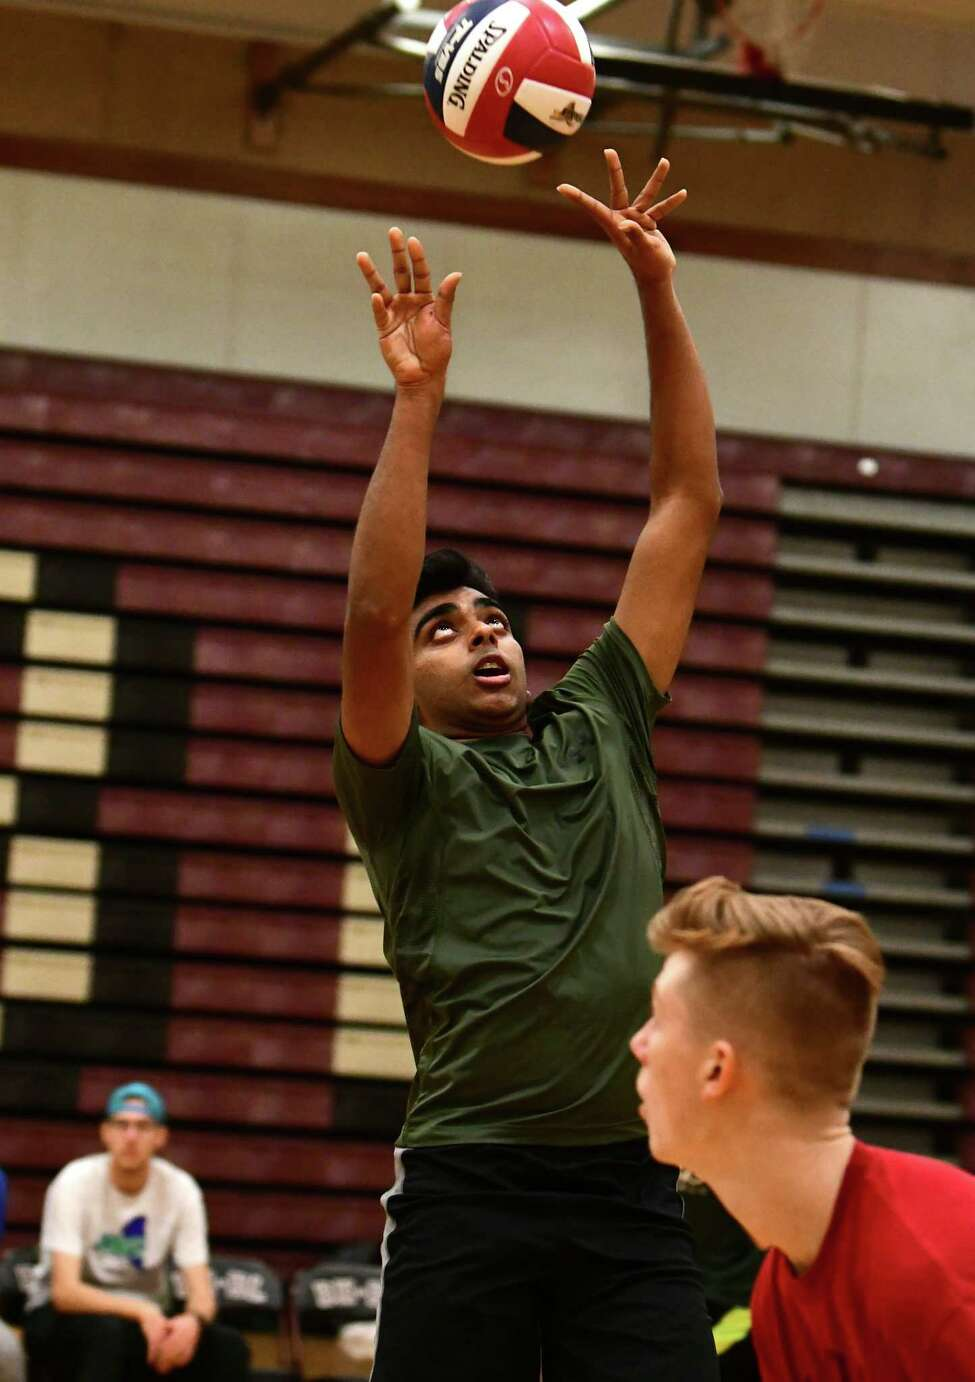 Shenendhowa volleyball player Rohan Gangaraju sets the ball during a scrimmage against Burnt Hills on Tuesday, Nov. 12, 2019 in Burnt Hills, N.Y. (Lori Van Buren/Times Union)